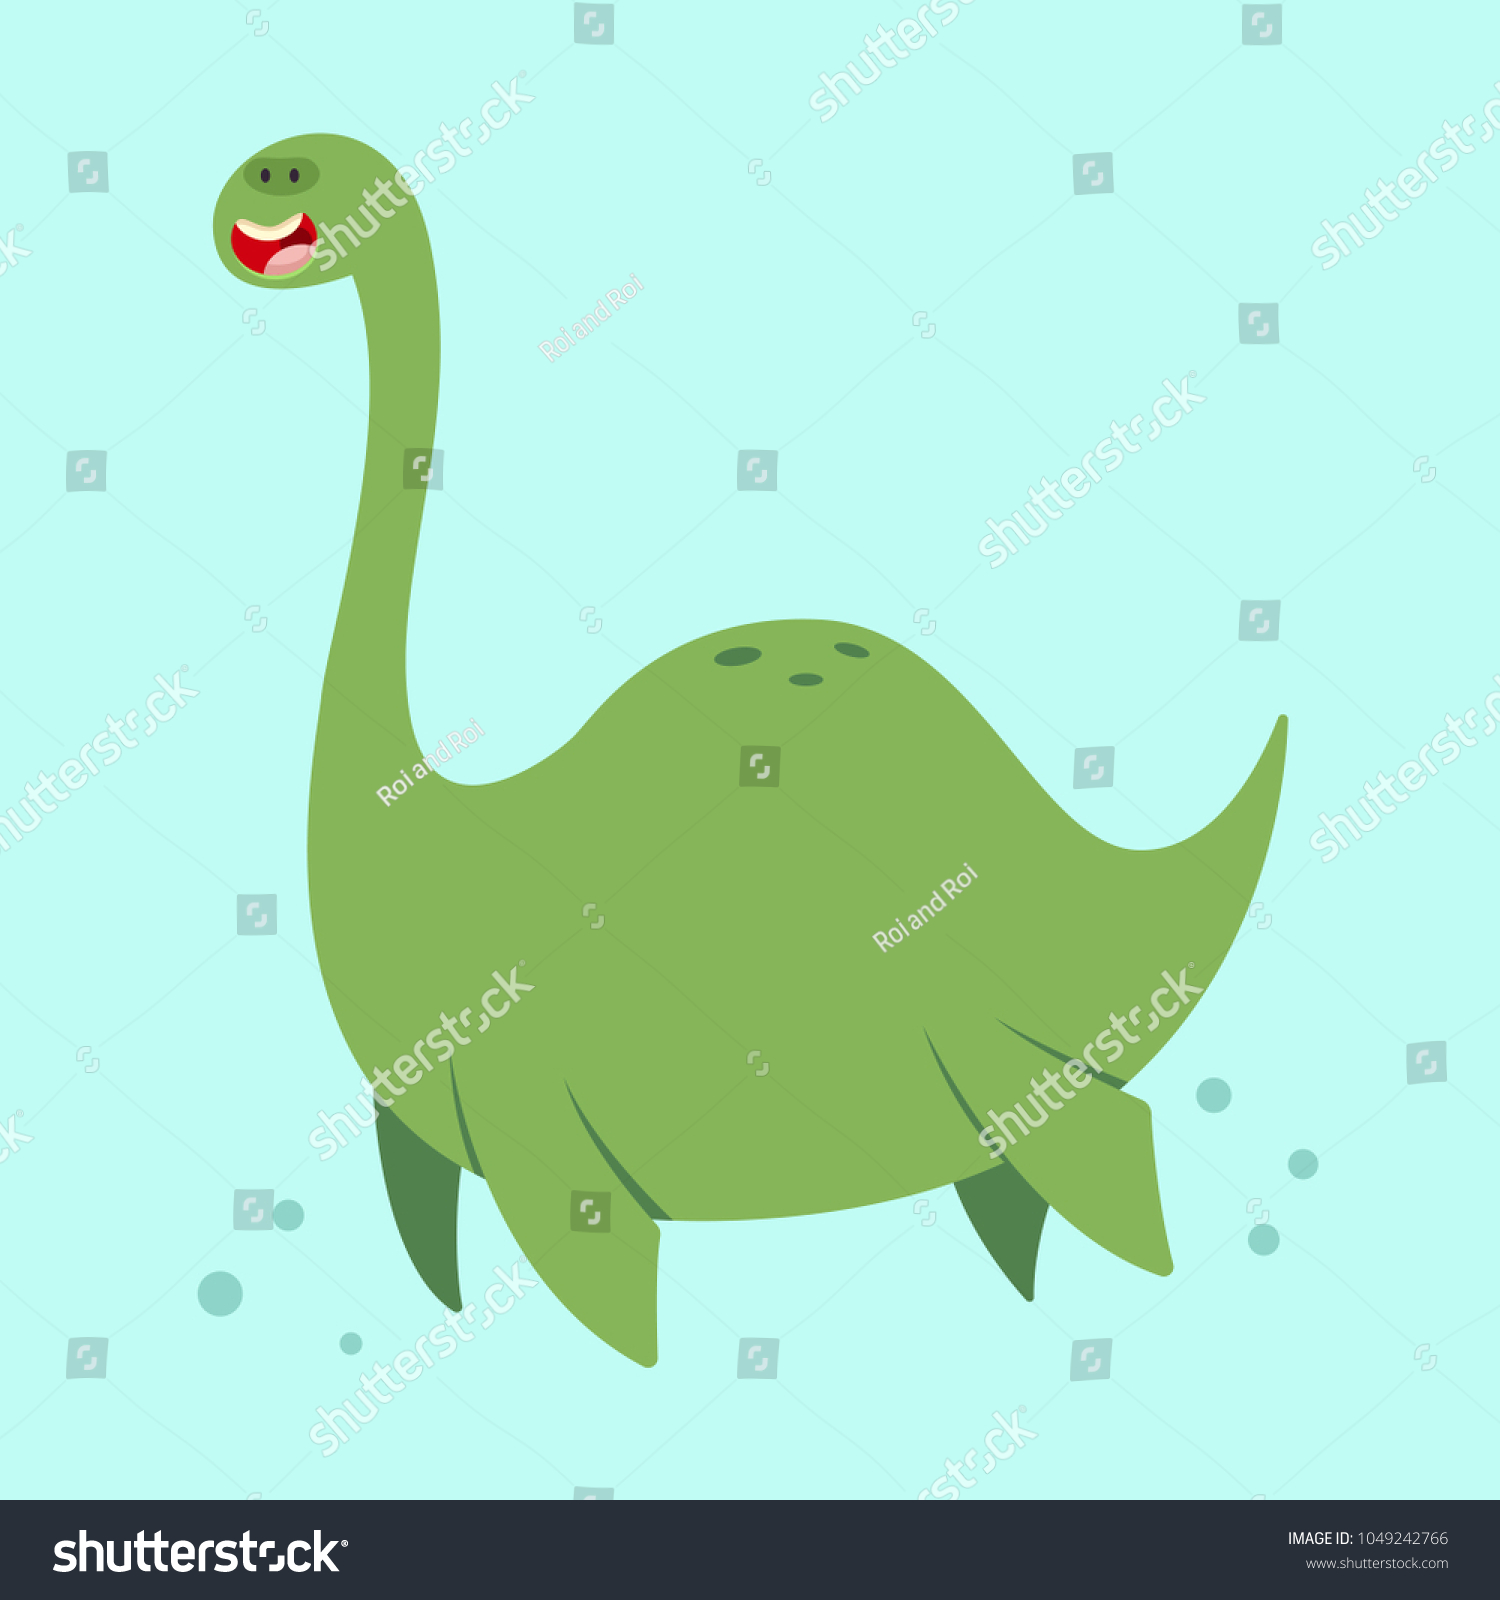 Cute Cartoon Loch Ness Monster Vector Stock Vector Royalty Free 1049242766